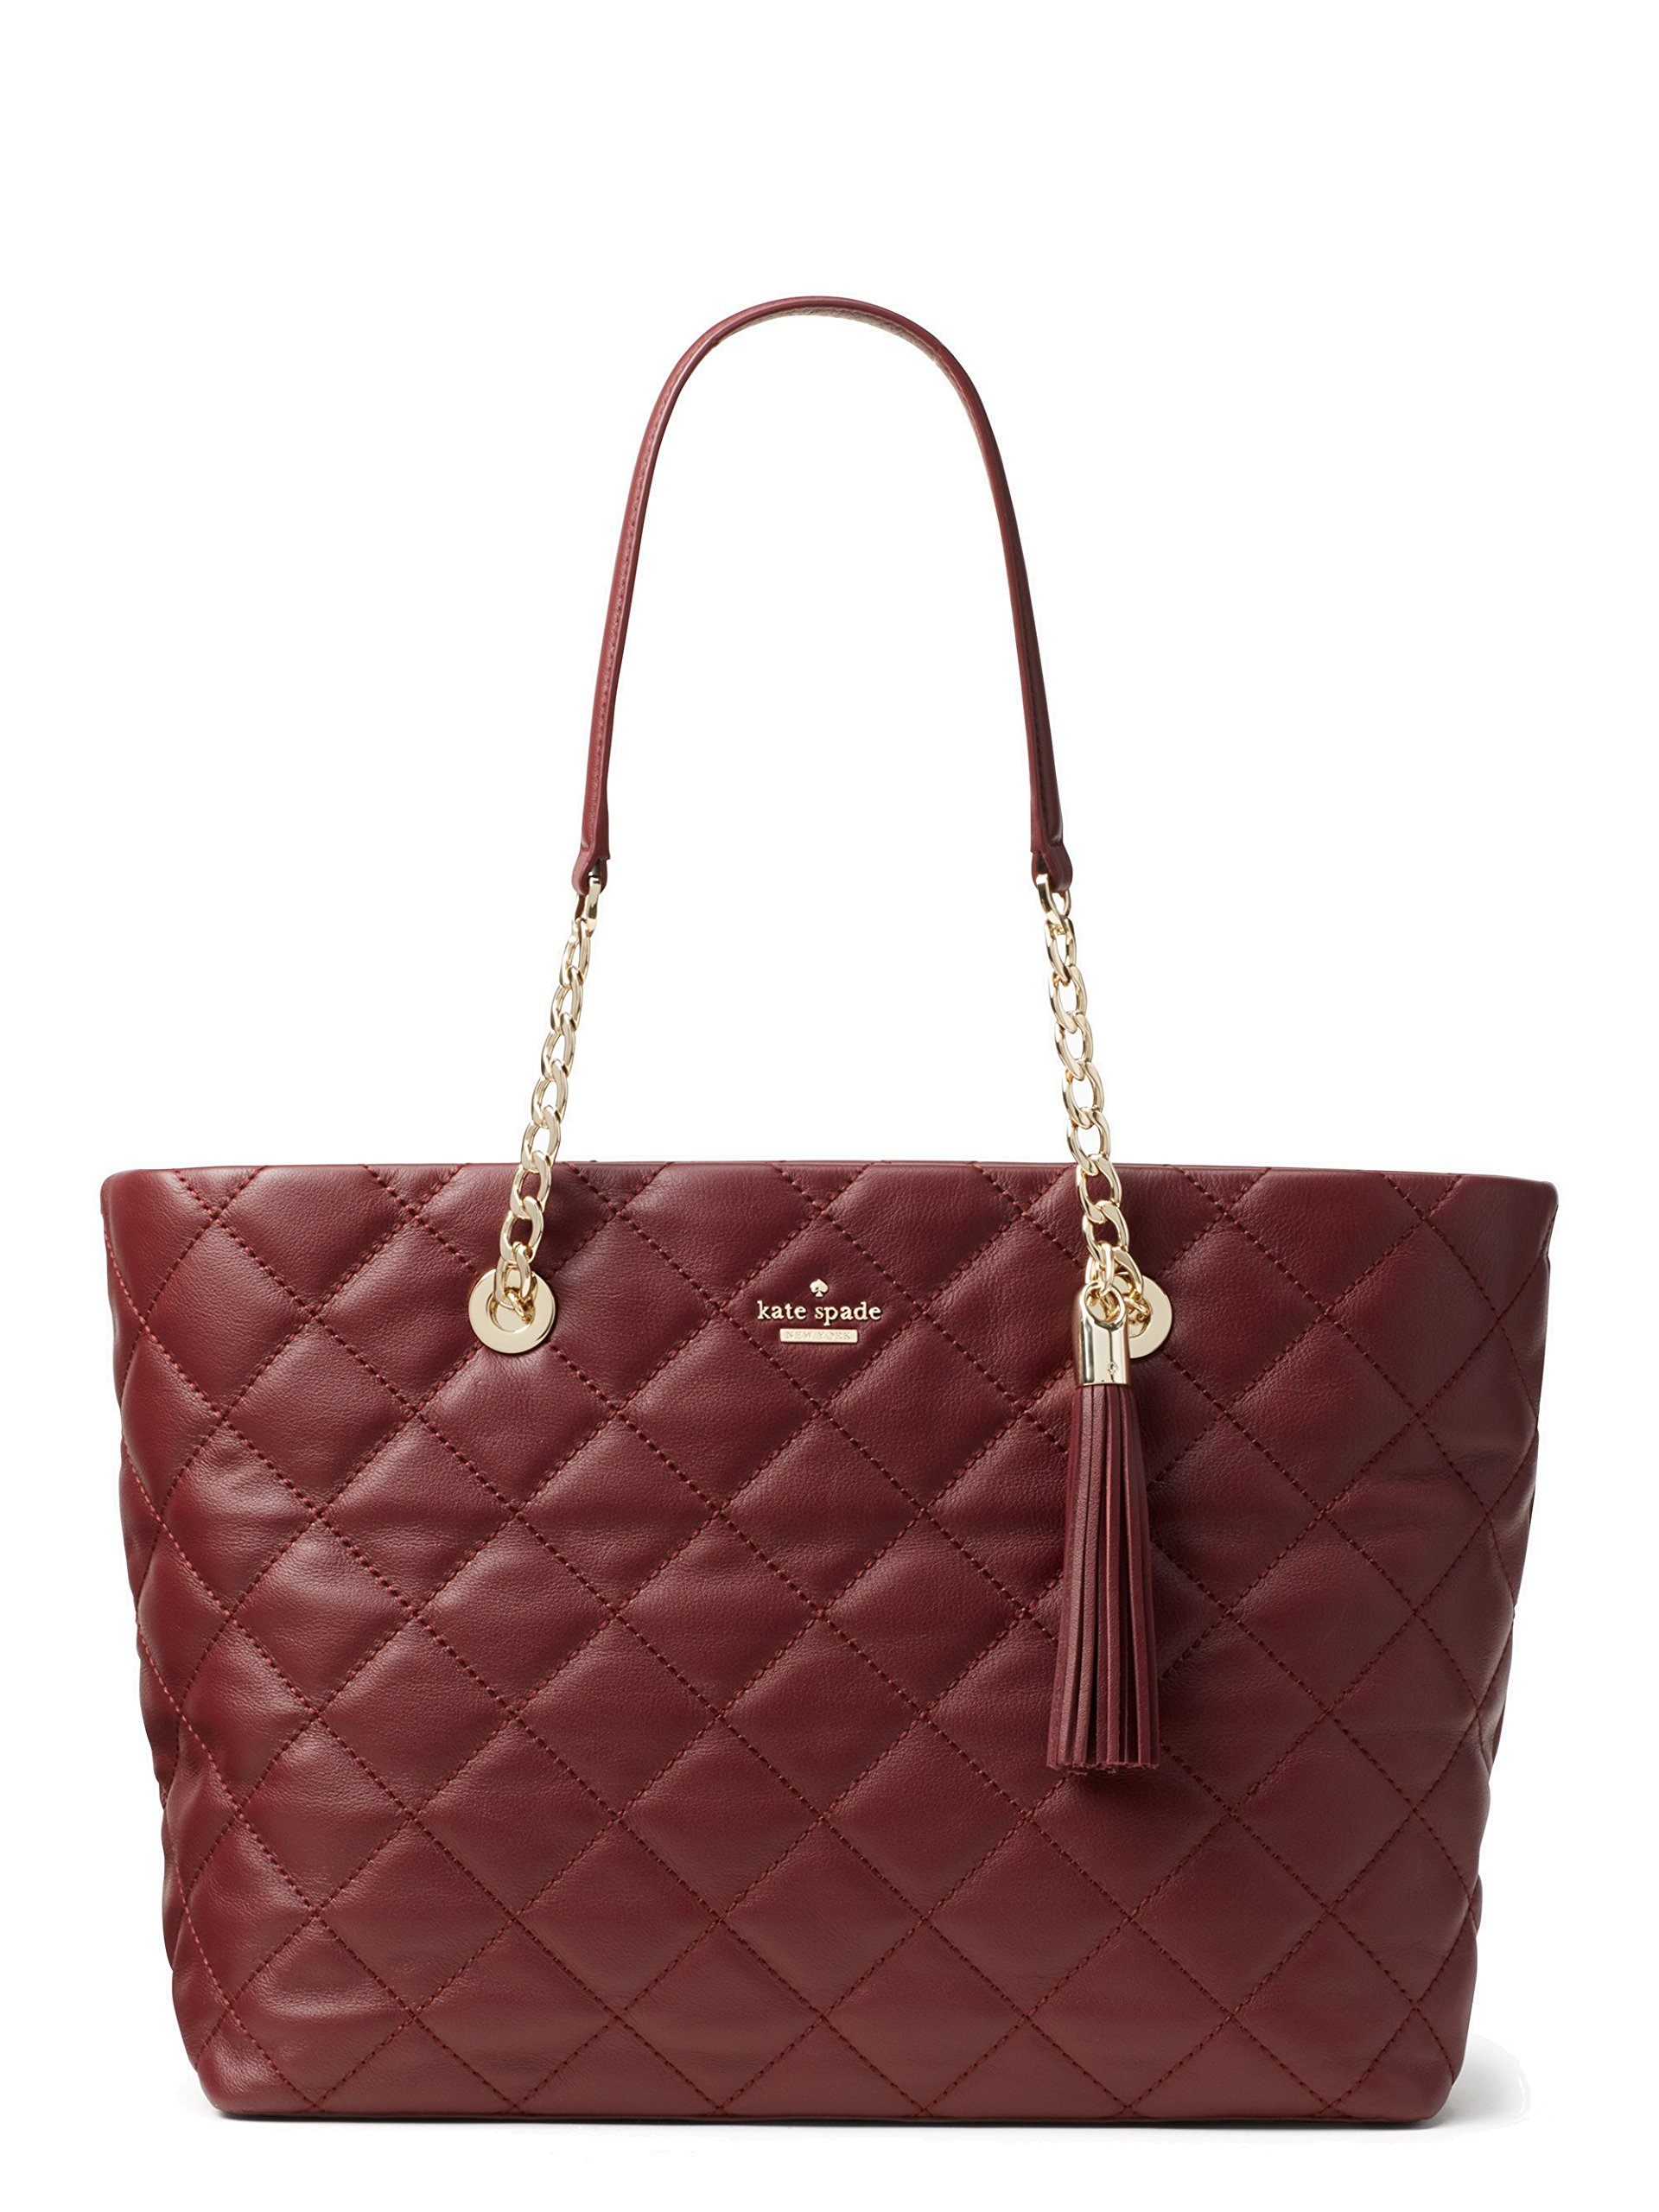 Kate Spade New York Emerson Place Priya Quilted Large Leather Shoulder Bag, Cherrywood